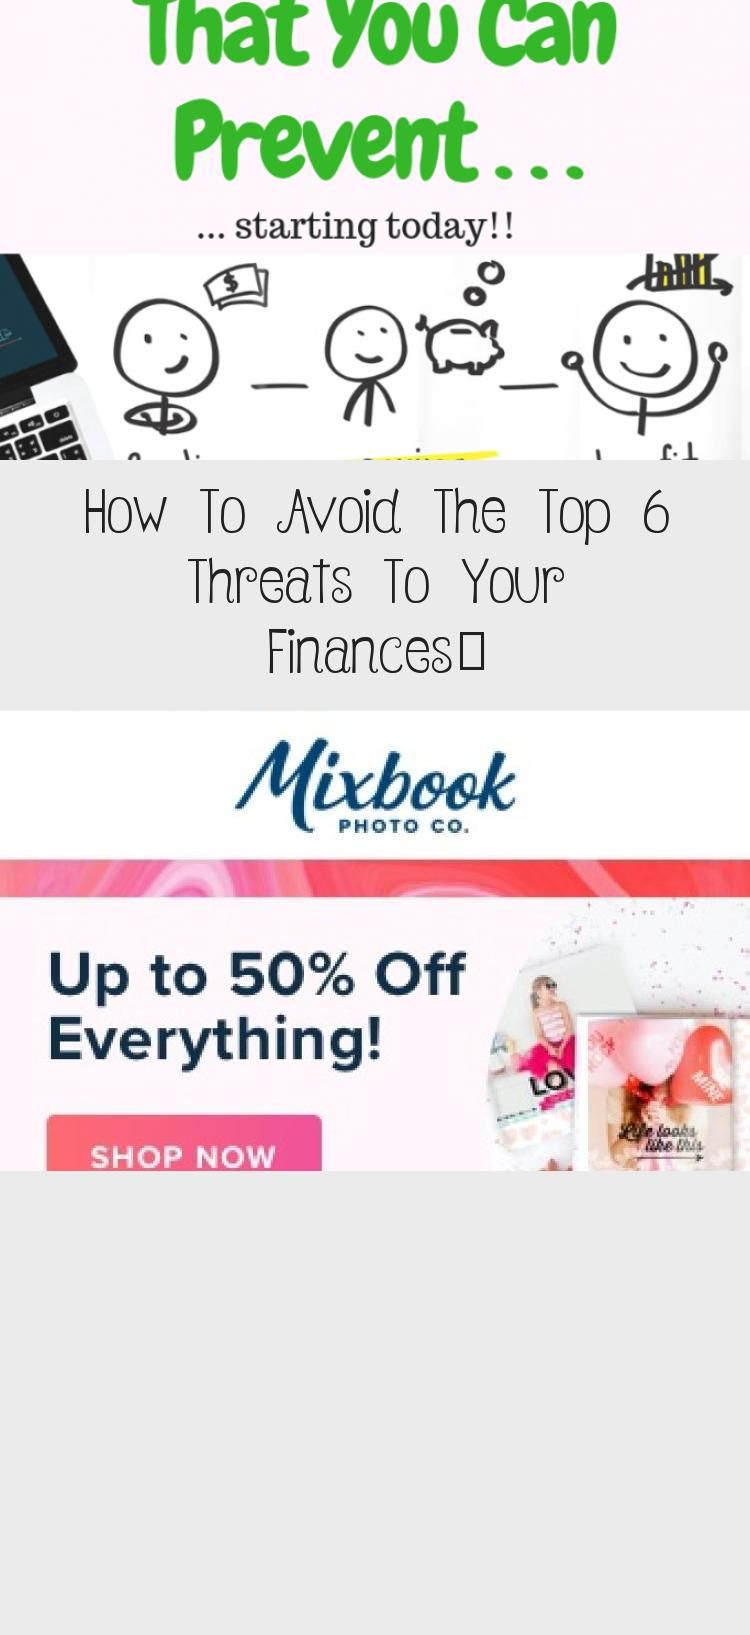 How To Avoid The Top 6 Threats To Your Finances In 2020